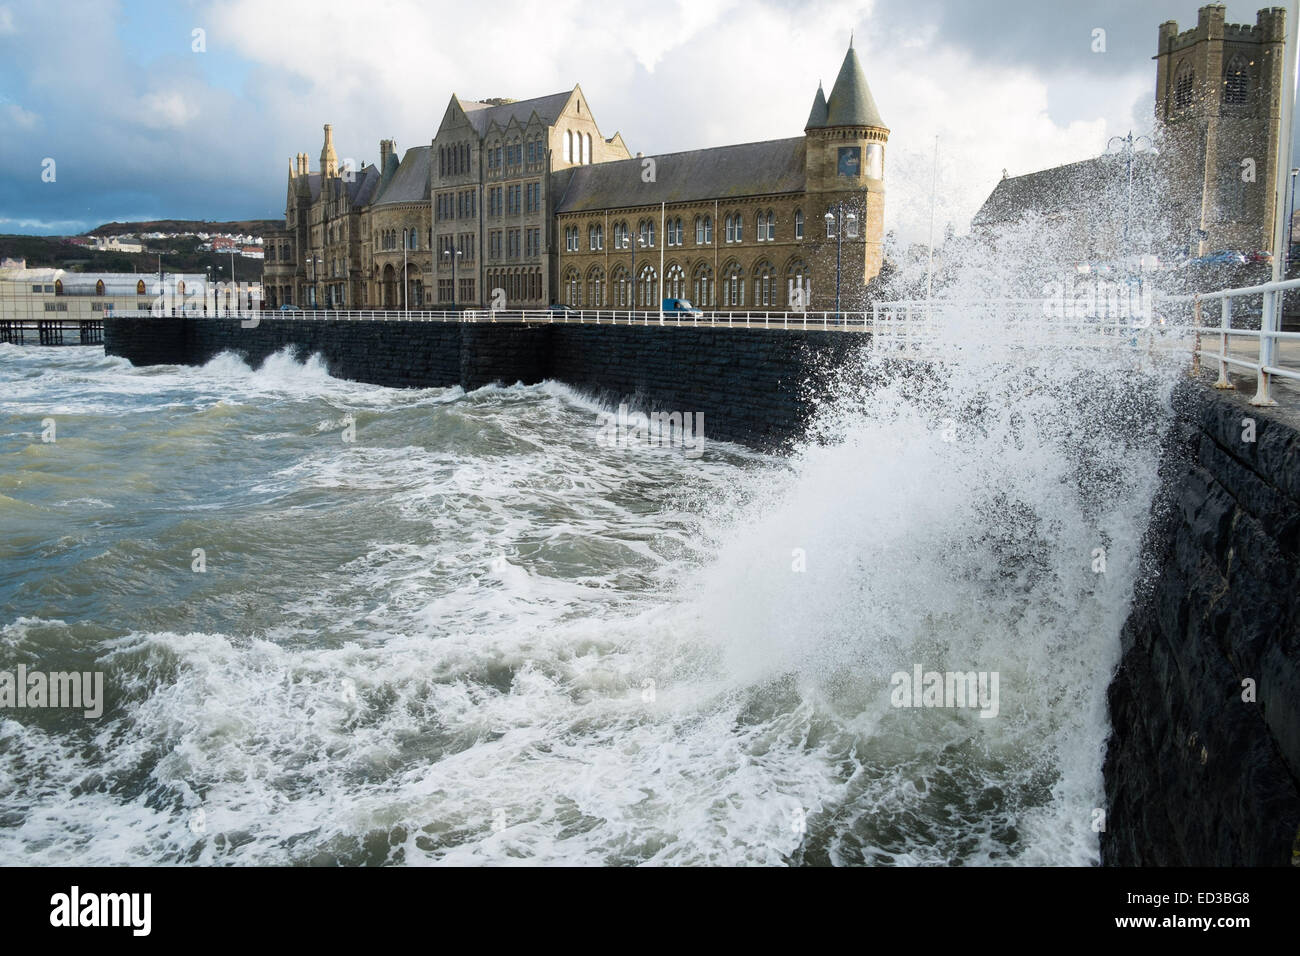 Aberystwyth Wales UK, Christmas Day 25th December 2014 Christmas Day in Aberystwyth is bright, crisp and clear, - Stock Image